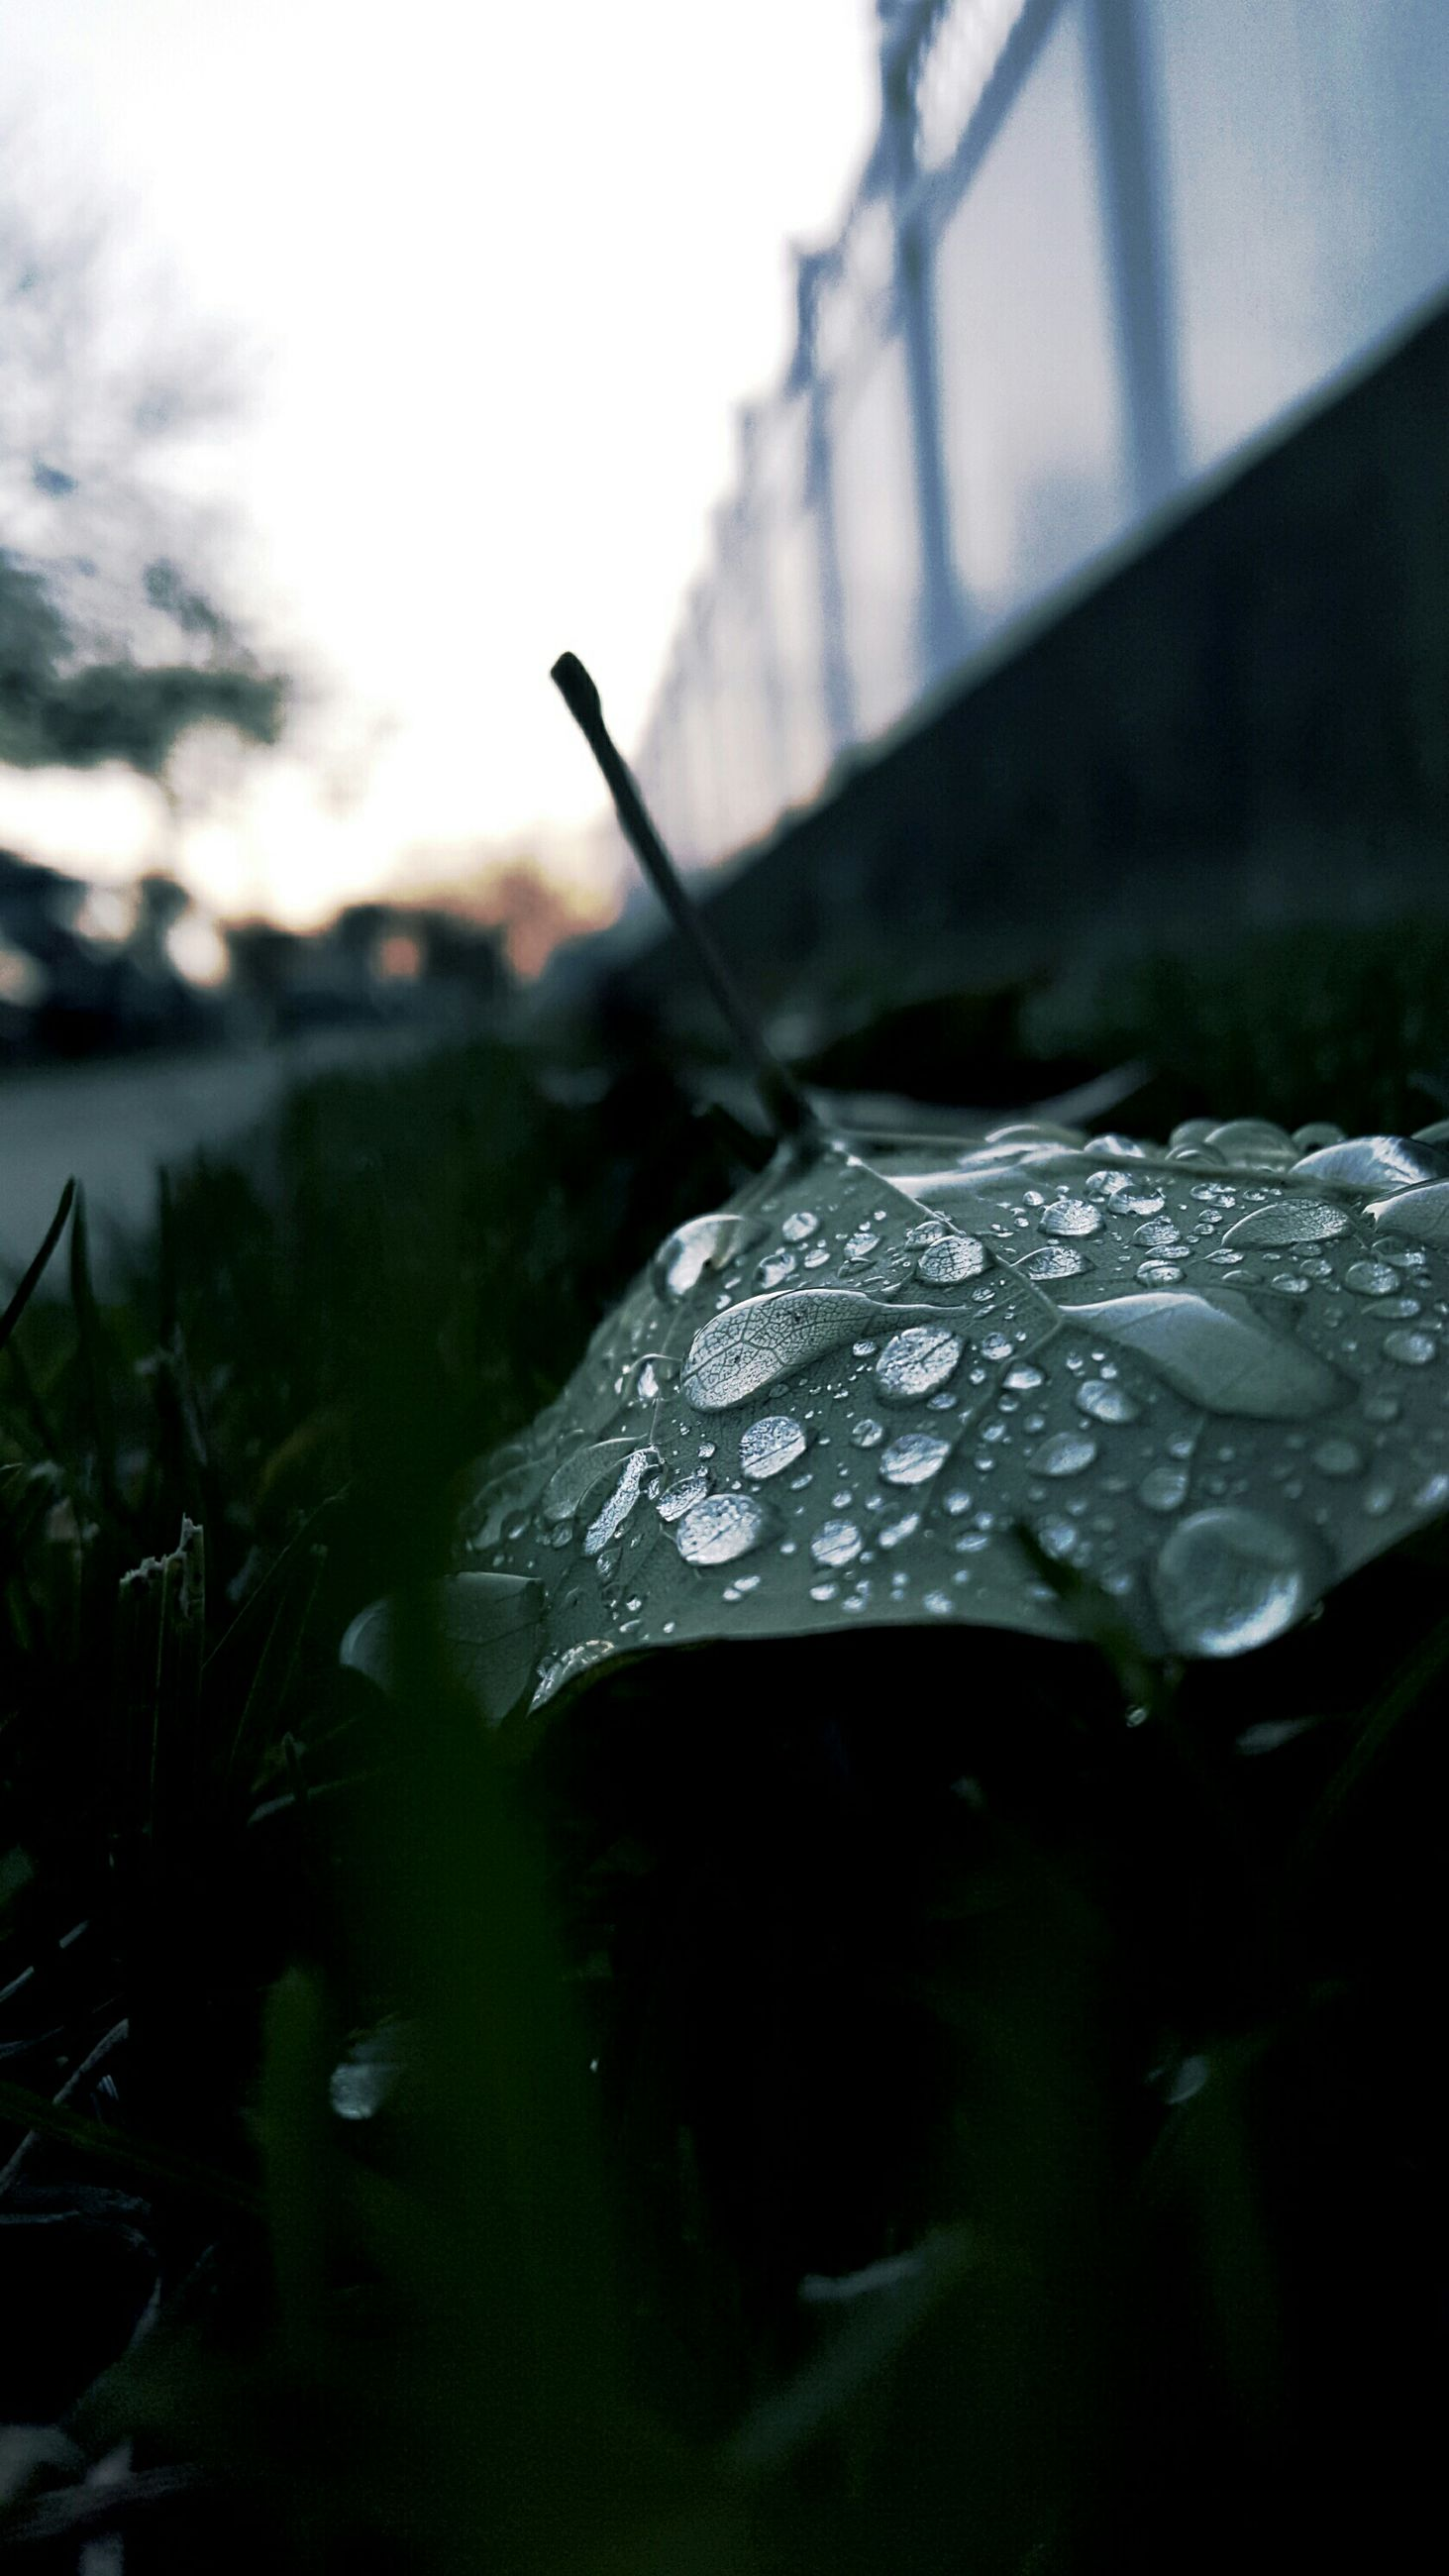 drop, focus on foreground, close-up, wet, water, selective focus, plant, nature, leaf, fragility, rain, growth, raindrop, outdoors, day, beauty in nature, dew, sky, grass, no people